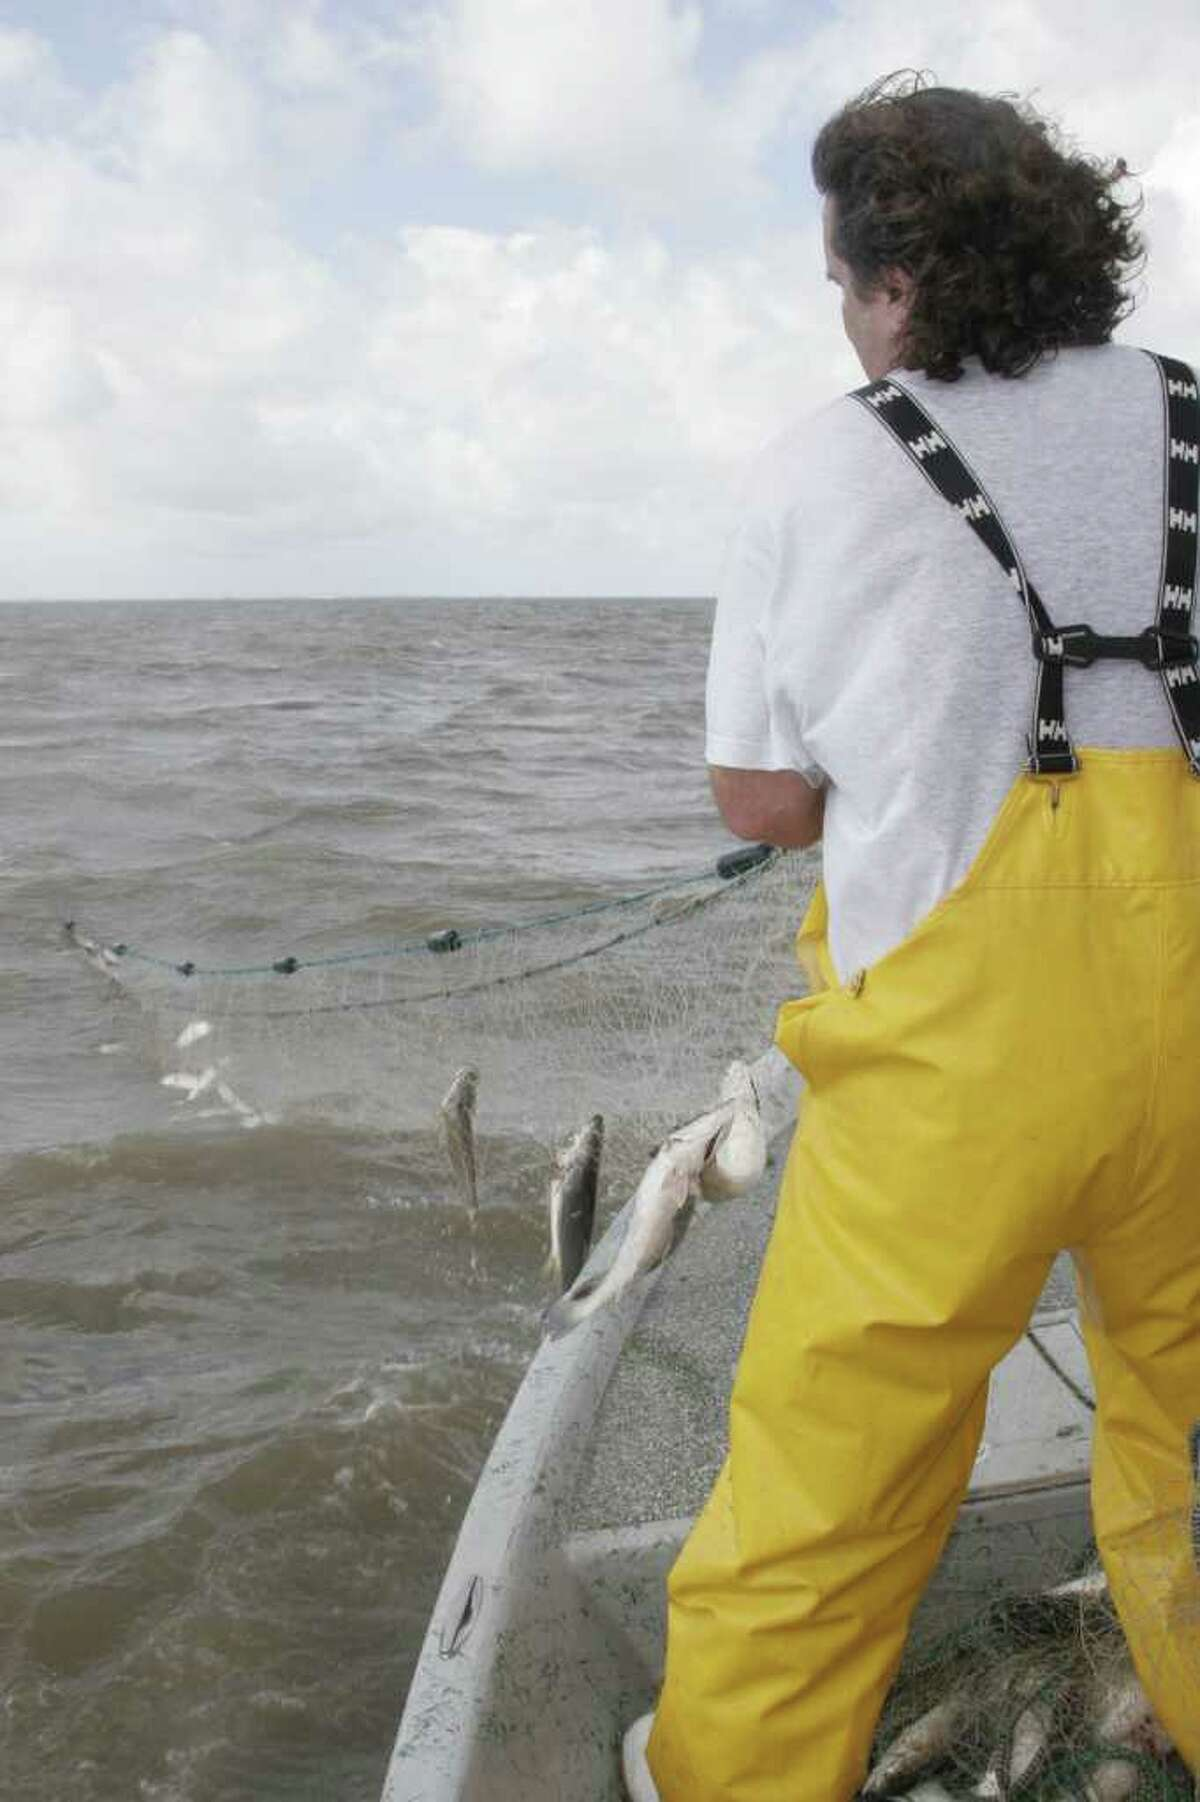 Data gathered through standardized gill net surveys by Texas coastal fisheries managers support what many anglers say they have seen: abundance of speckled trout in West Matagorda, San Antonio and Aransas bays have sharply declined over the past several years. Shannon Tompkins/ Houston Chronicle